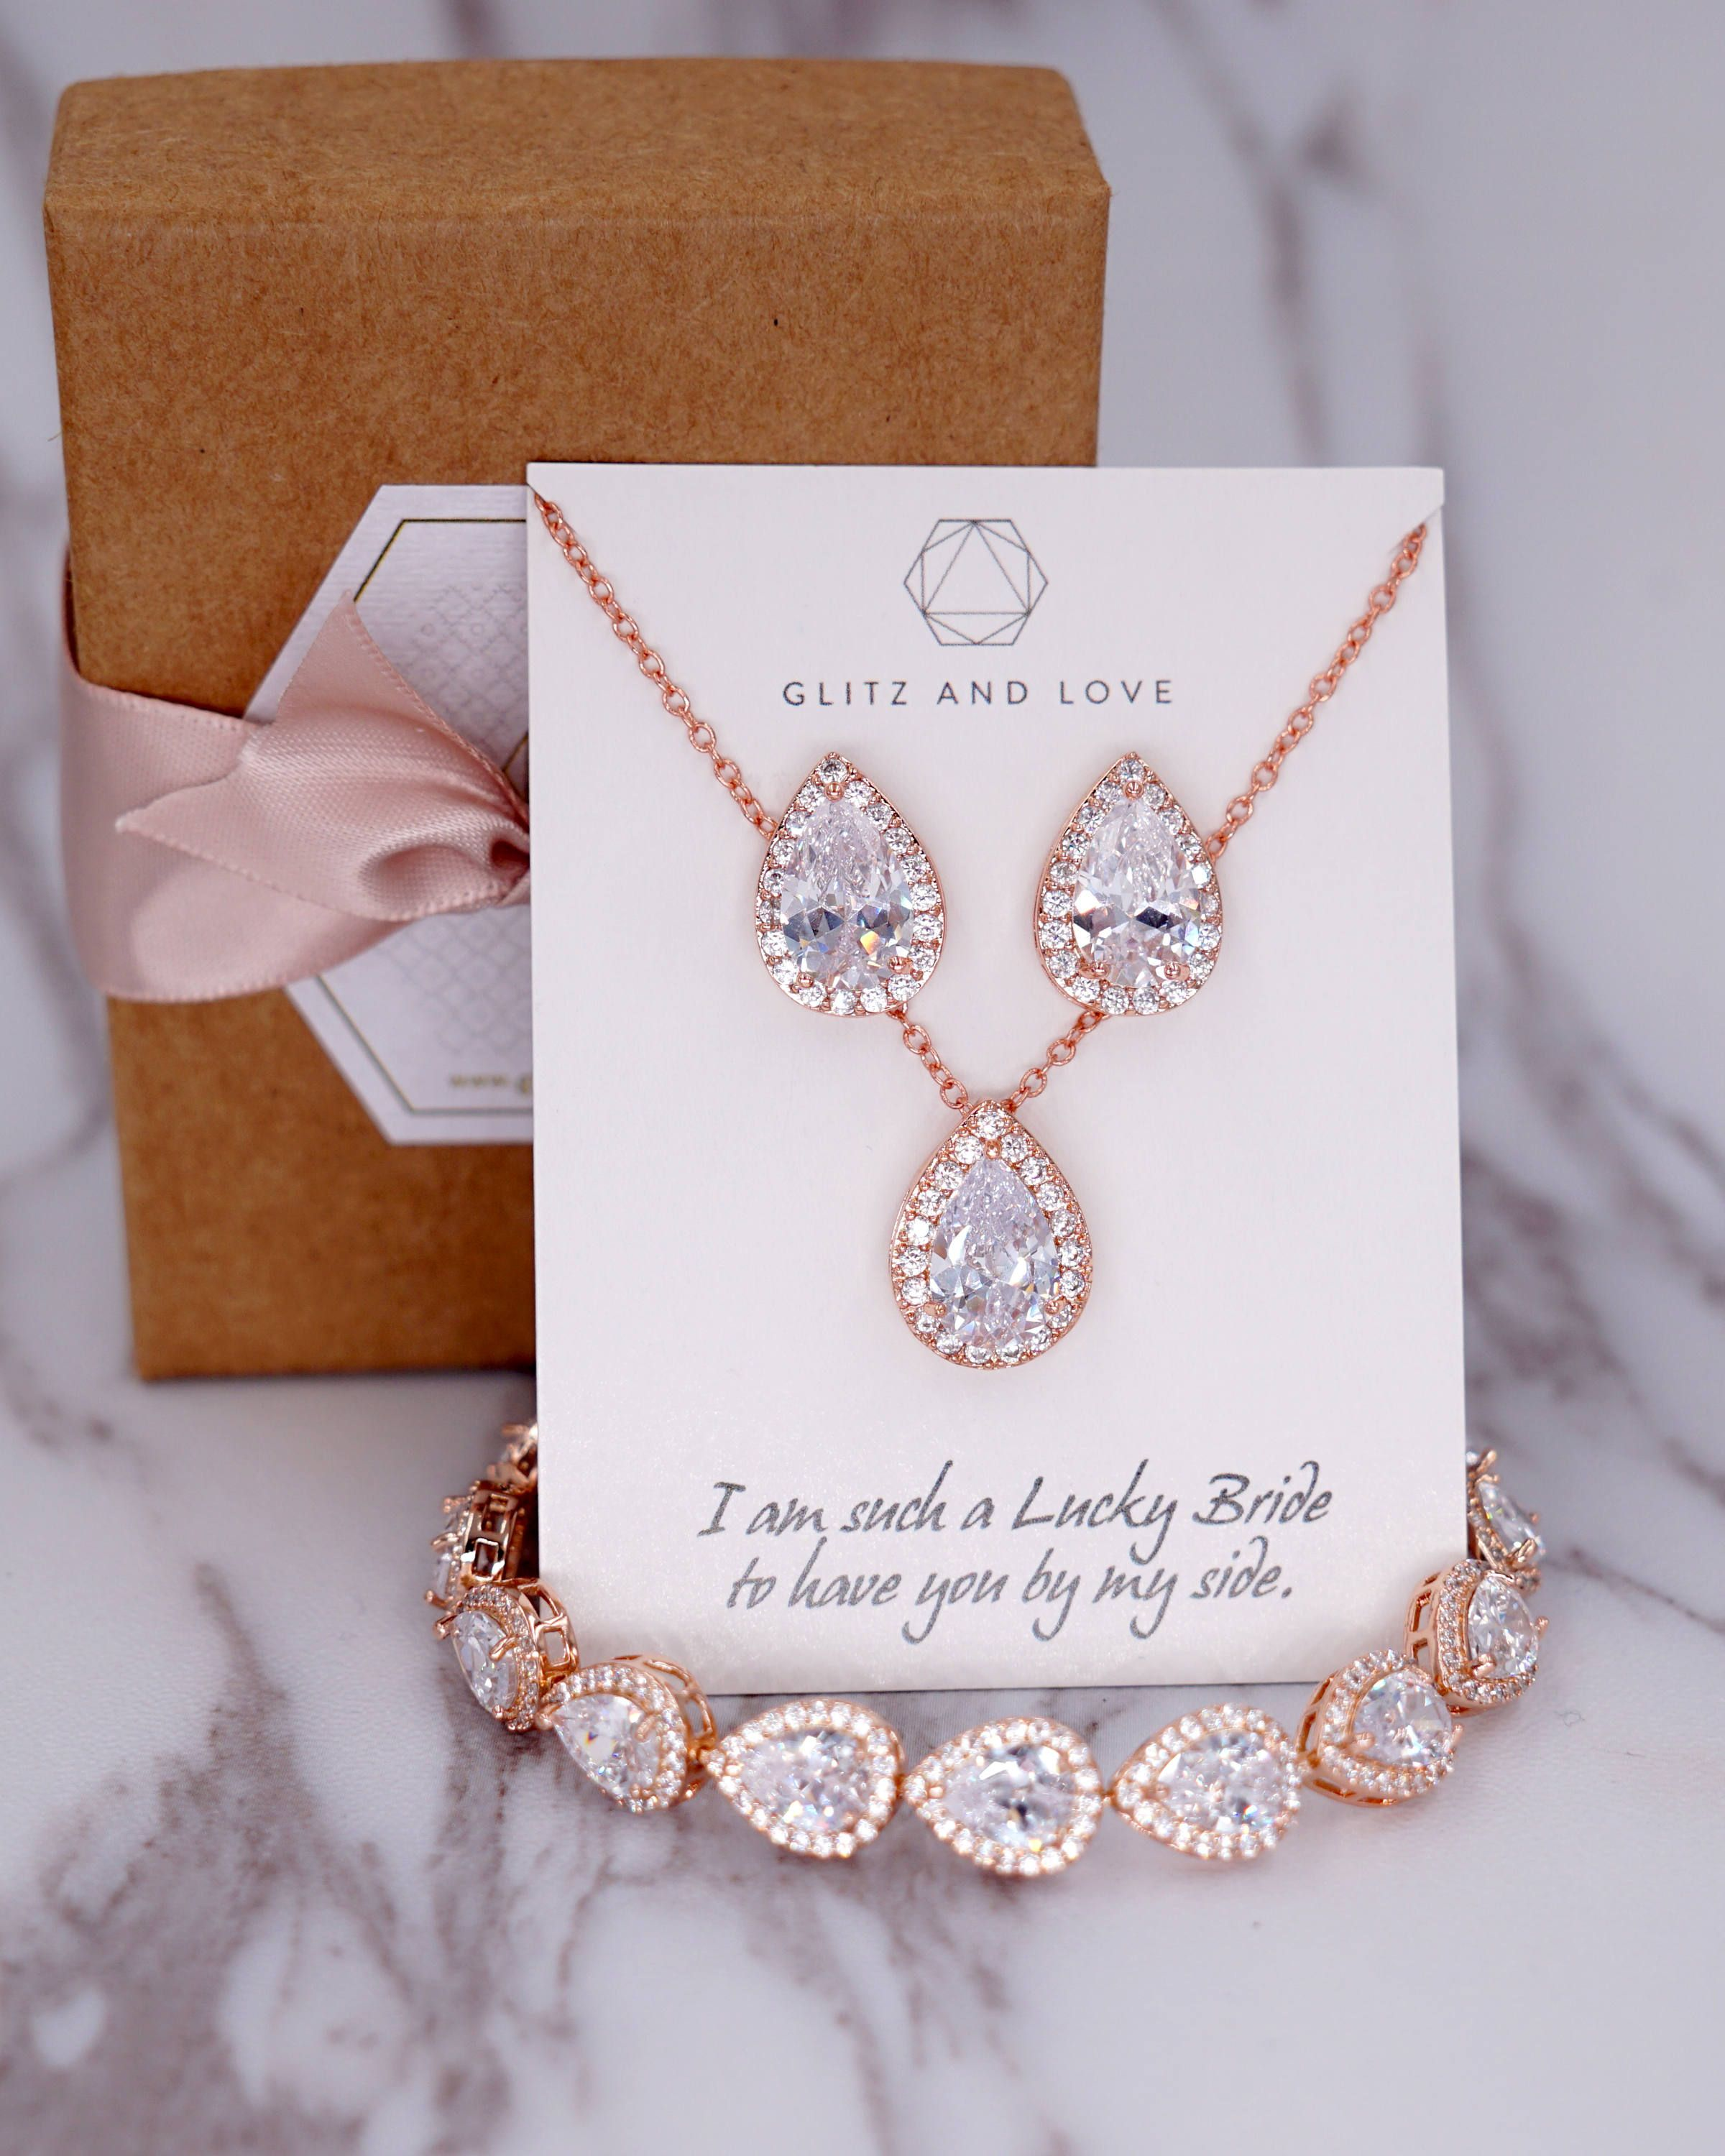 Rose Gold Wedding Bridesmaid Gift Bridal Earrings Necklace Etsy Wedding Gifts For Bridesmaids Bride Jewelry Set Rose Gold Wedding Bridesmaids